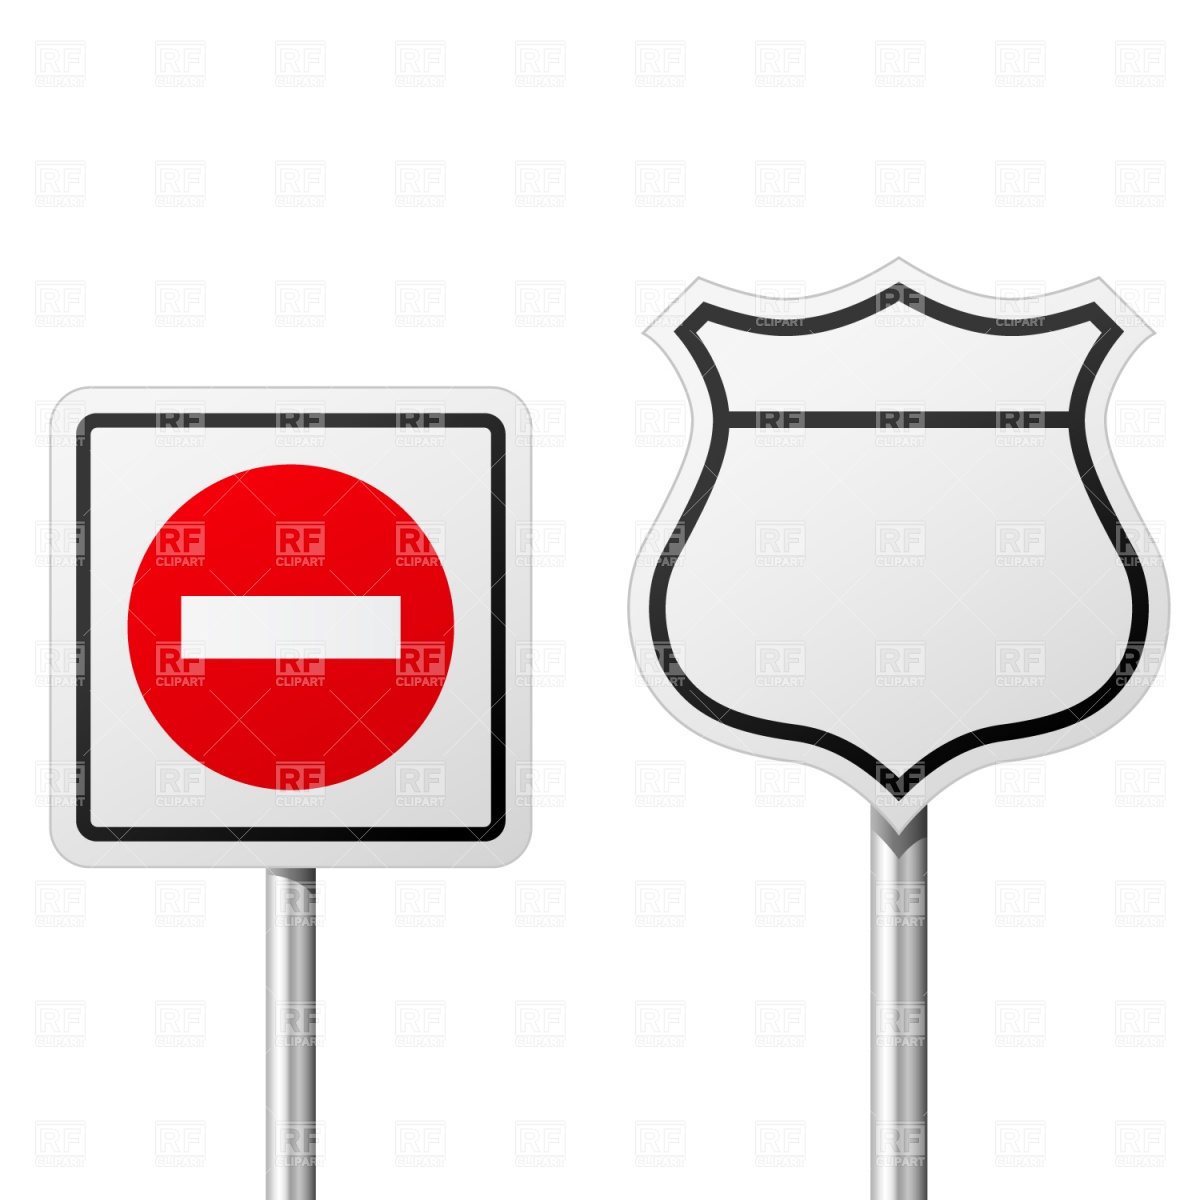 Do Not Enter and route sign Vector Image #1504.